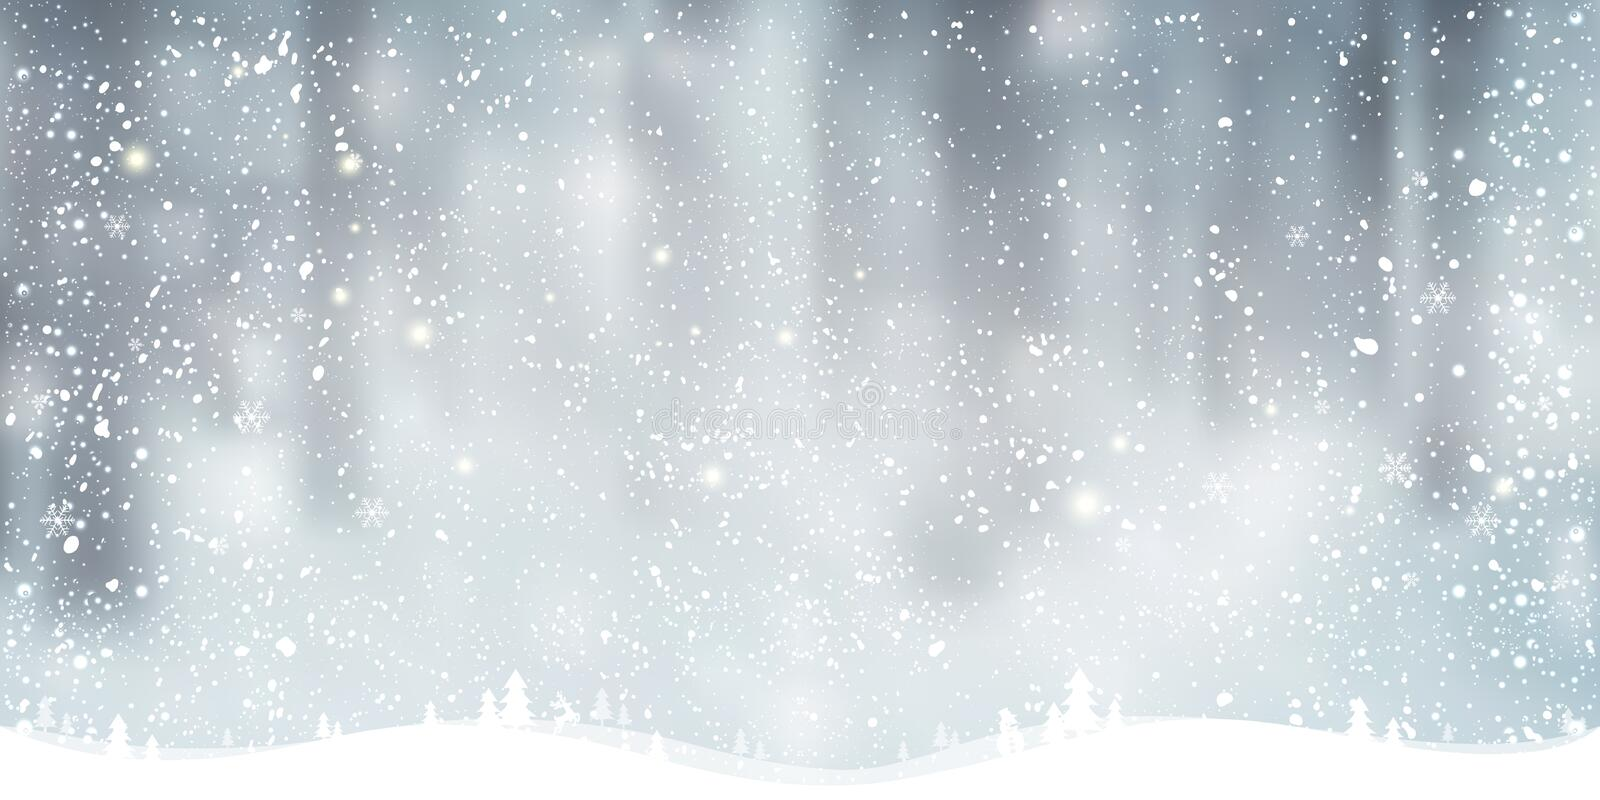 Winter Christmas background with landscape, snowflakes, light, stars. vector illustration